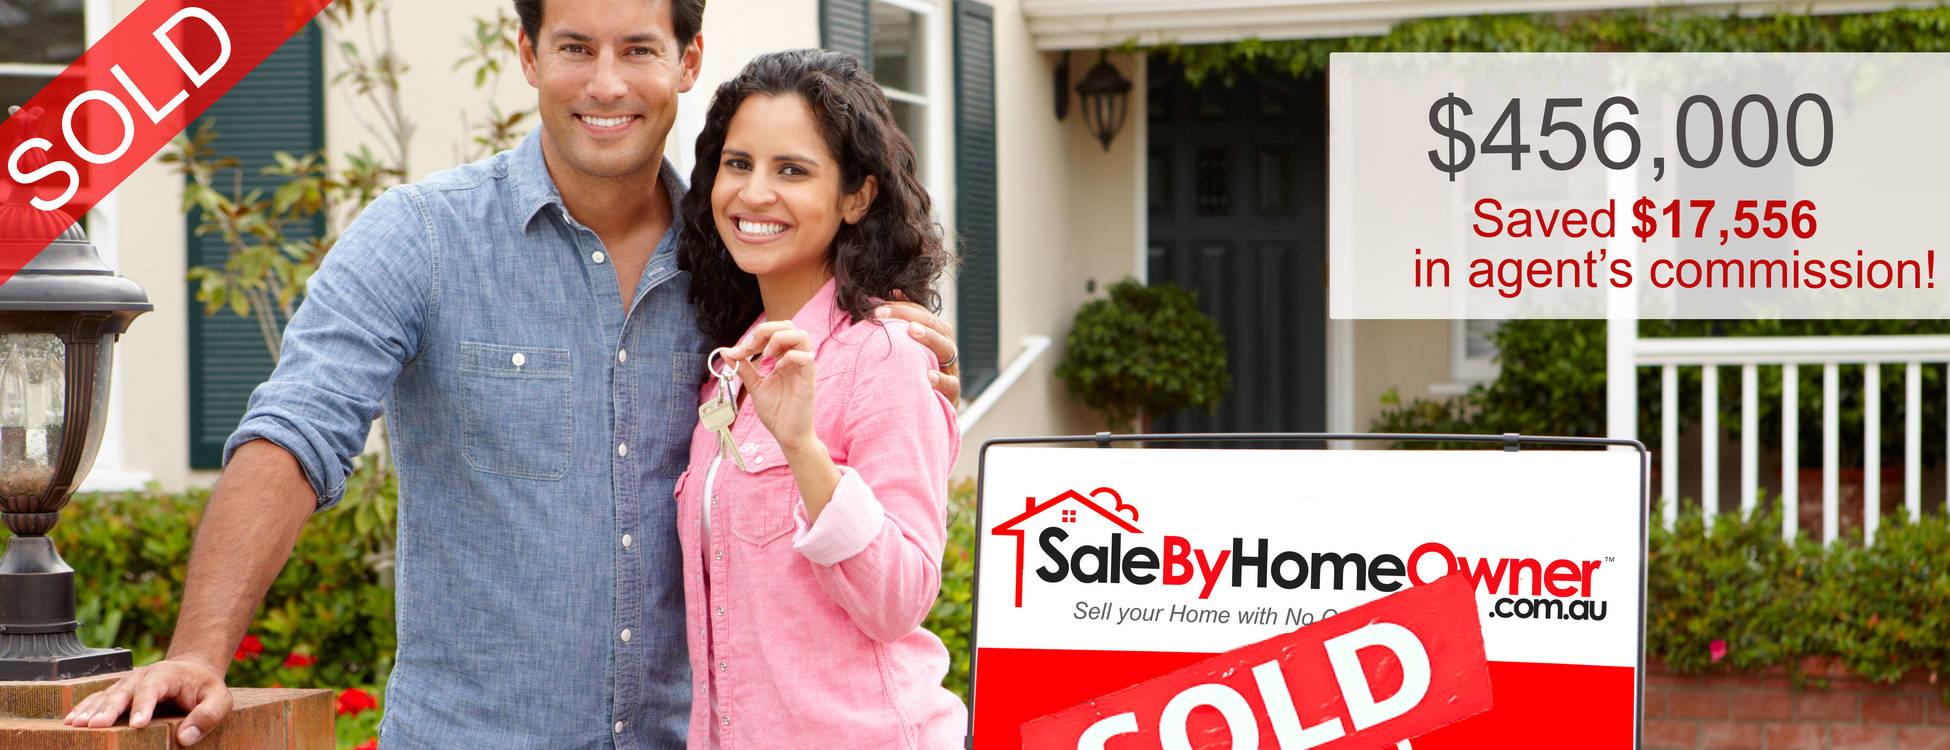 HOW DO I SELL MY HOME BY OWNER